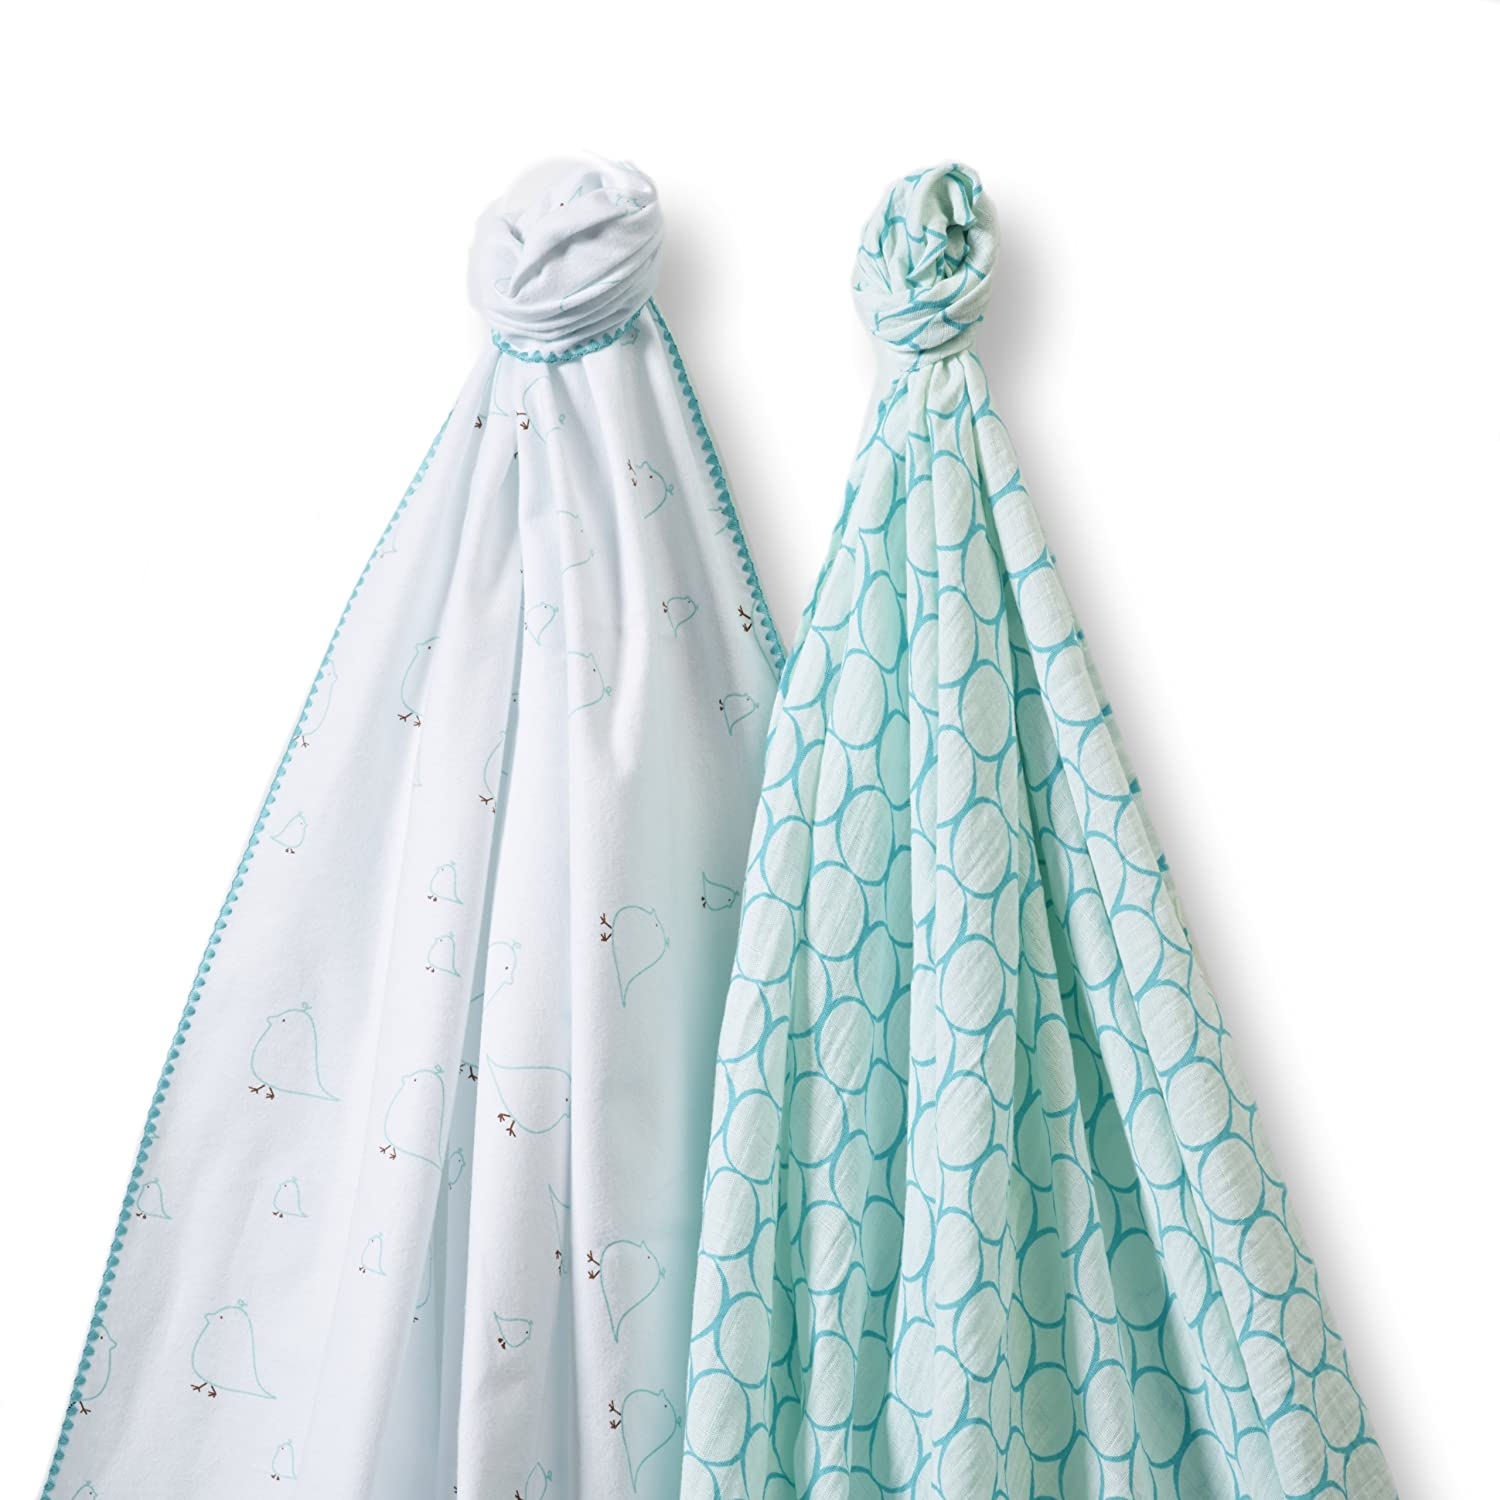 Premium Cotton Flannel SwaddleDesigns SwaddleDuo Turquoise Mama and Baby Chickies Duo Set of 2 Swaddling Blankets Cotton Marquisette